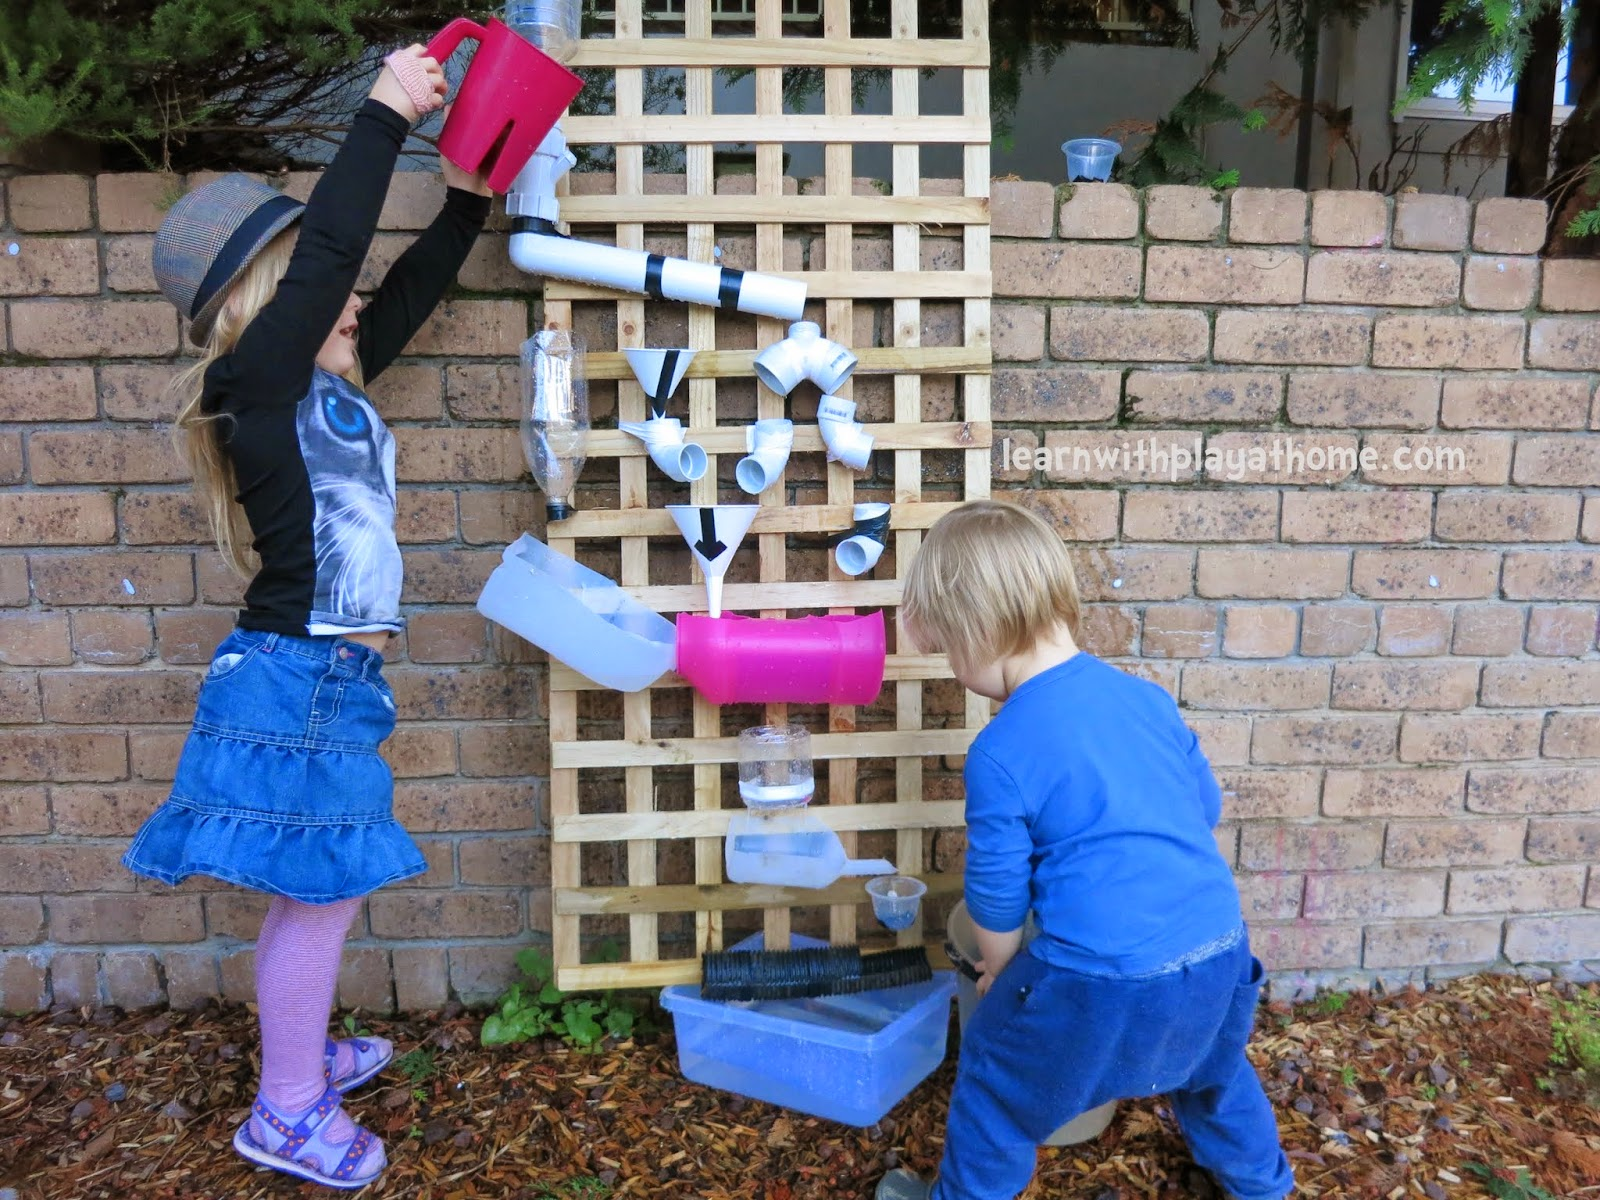 Walls For Kids Learn With Play At Home How To Make A Water Wall For Kids